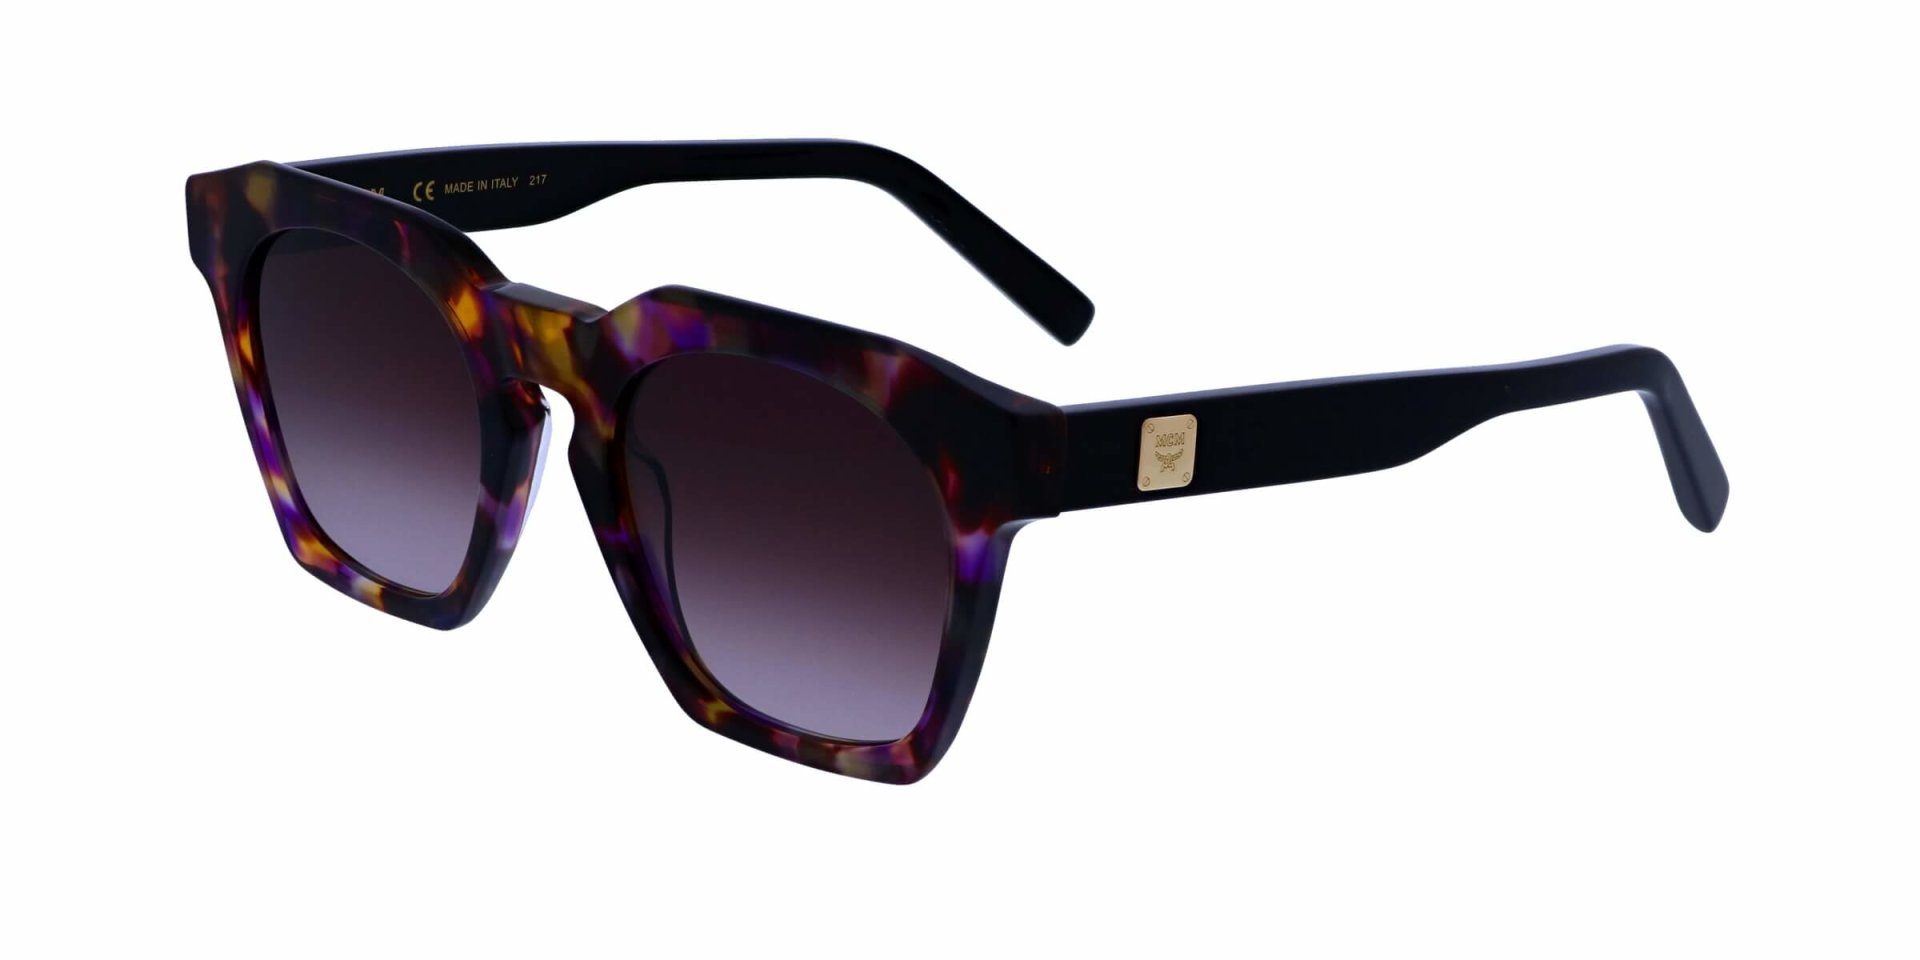 Sunglasses Mcm Opticlasa